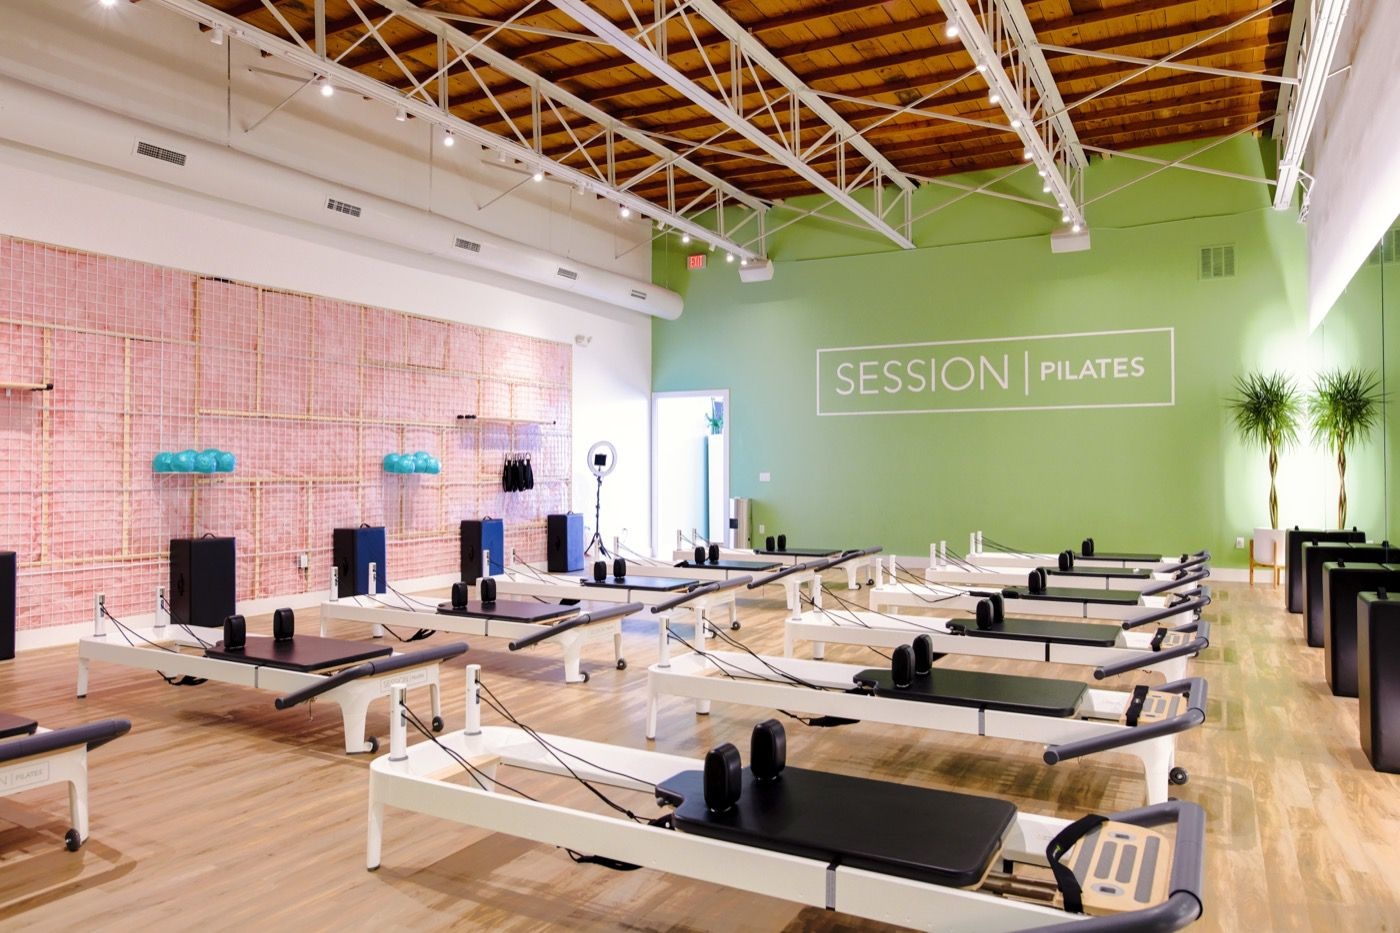 Session Pilates, pictured here in Lakewood, is expanding to a new area of Dallas: University Park. The third Session Pilates in Dallas is expected to be open by April 2019.